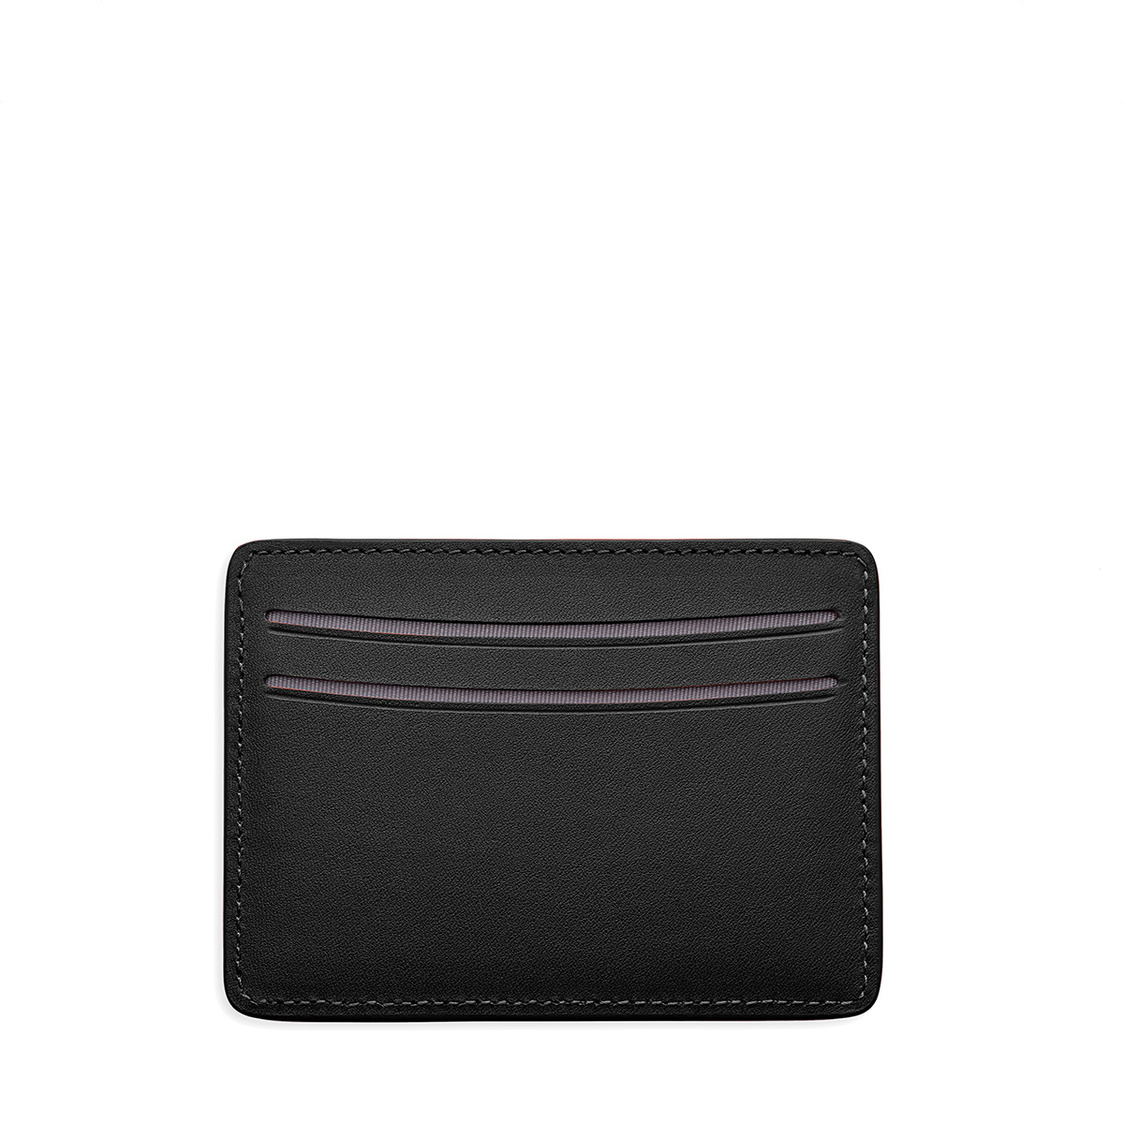 Kas Wallet - Black Leather